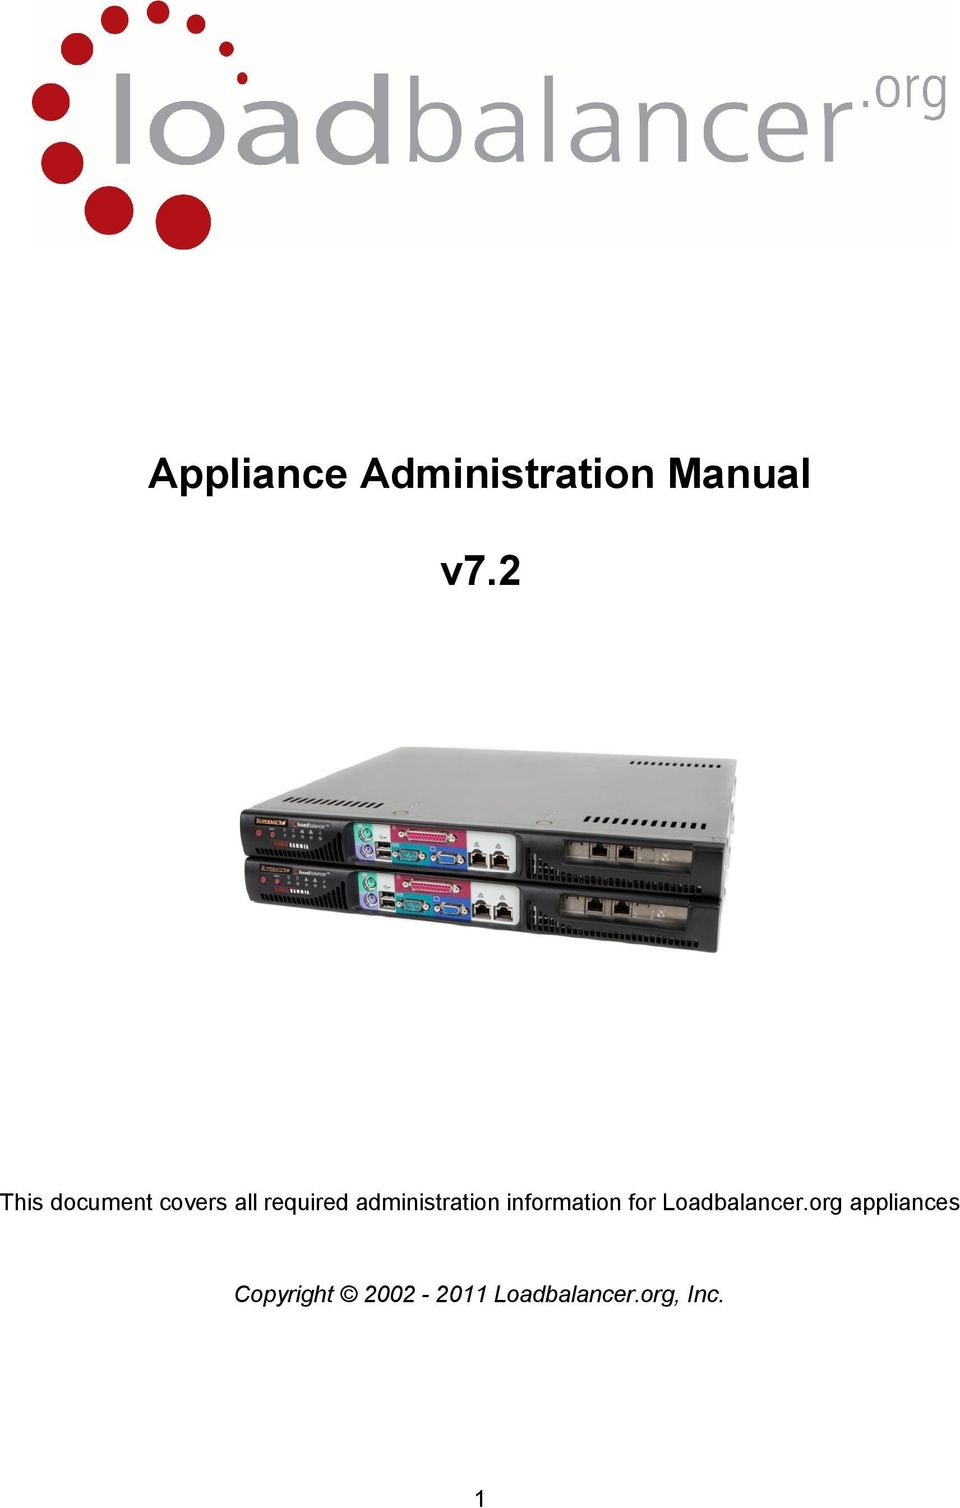 administration information for Loadbalancer.